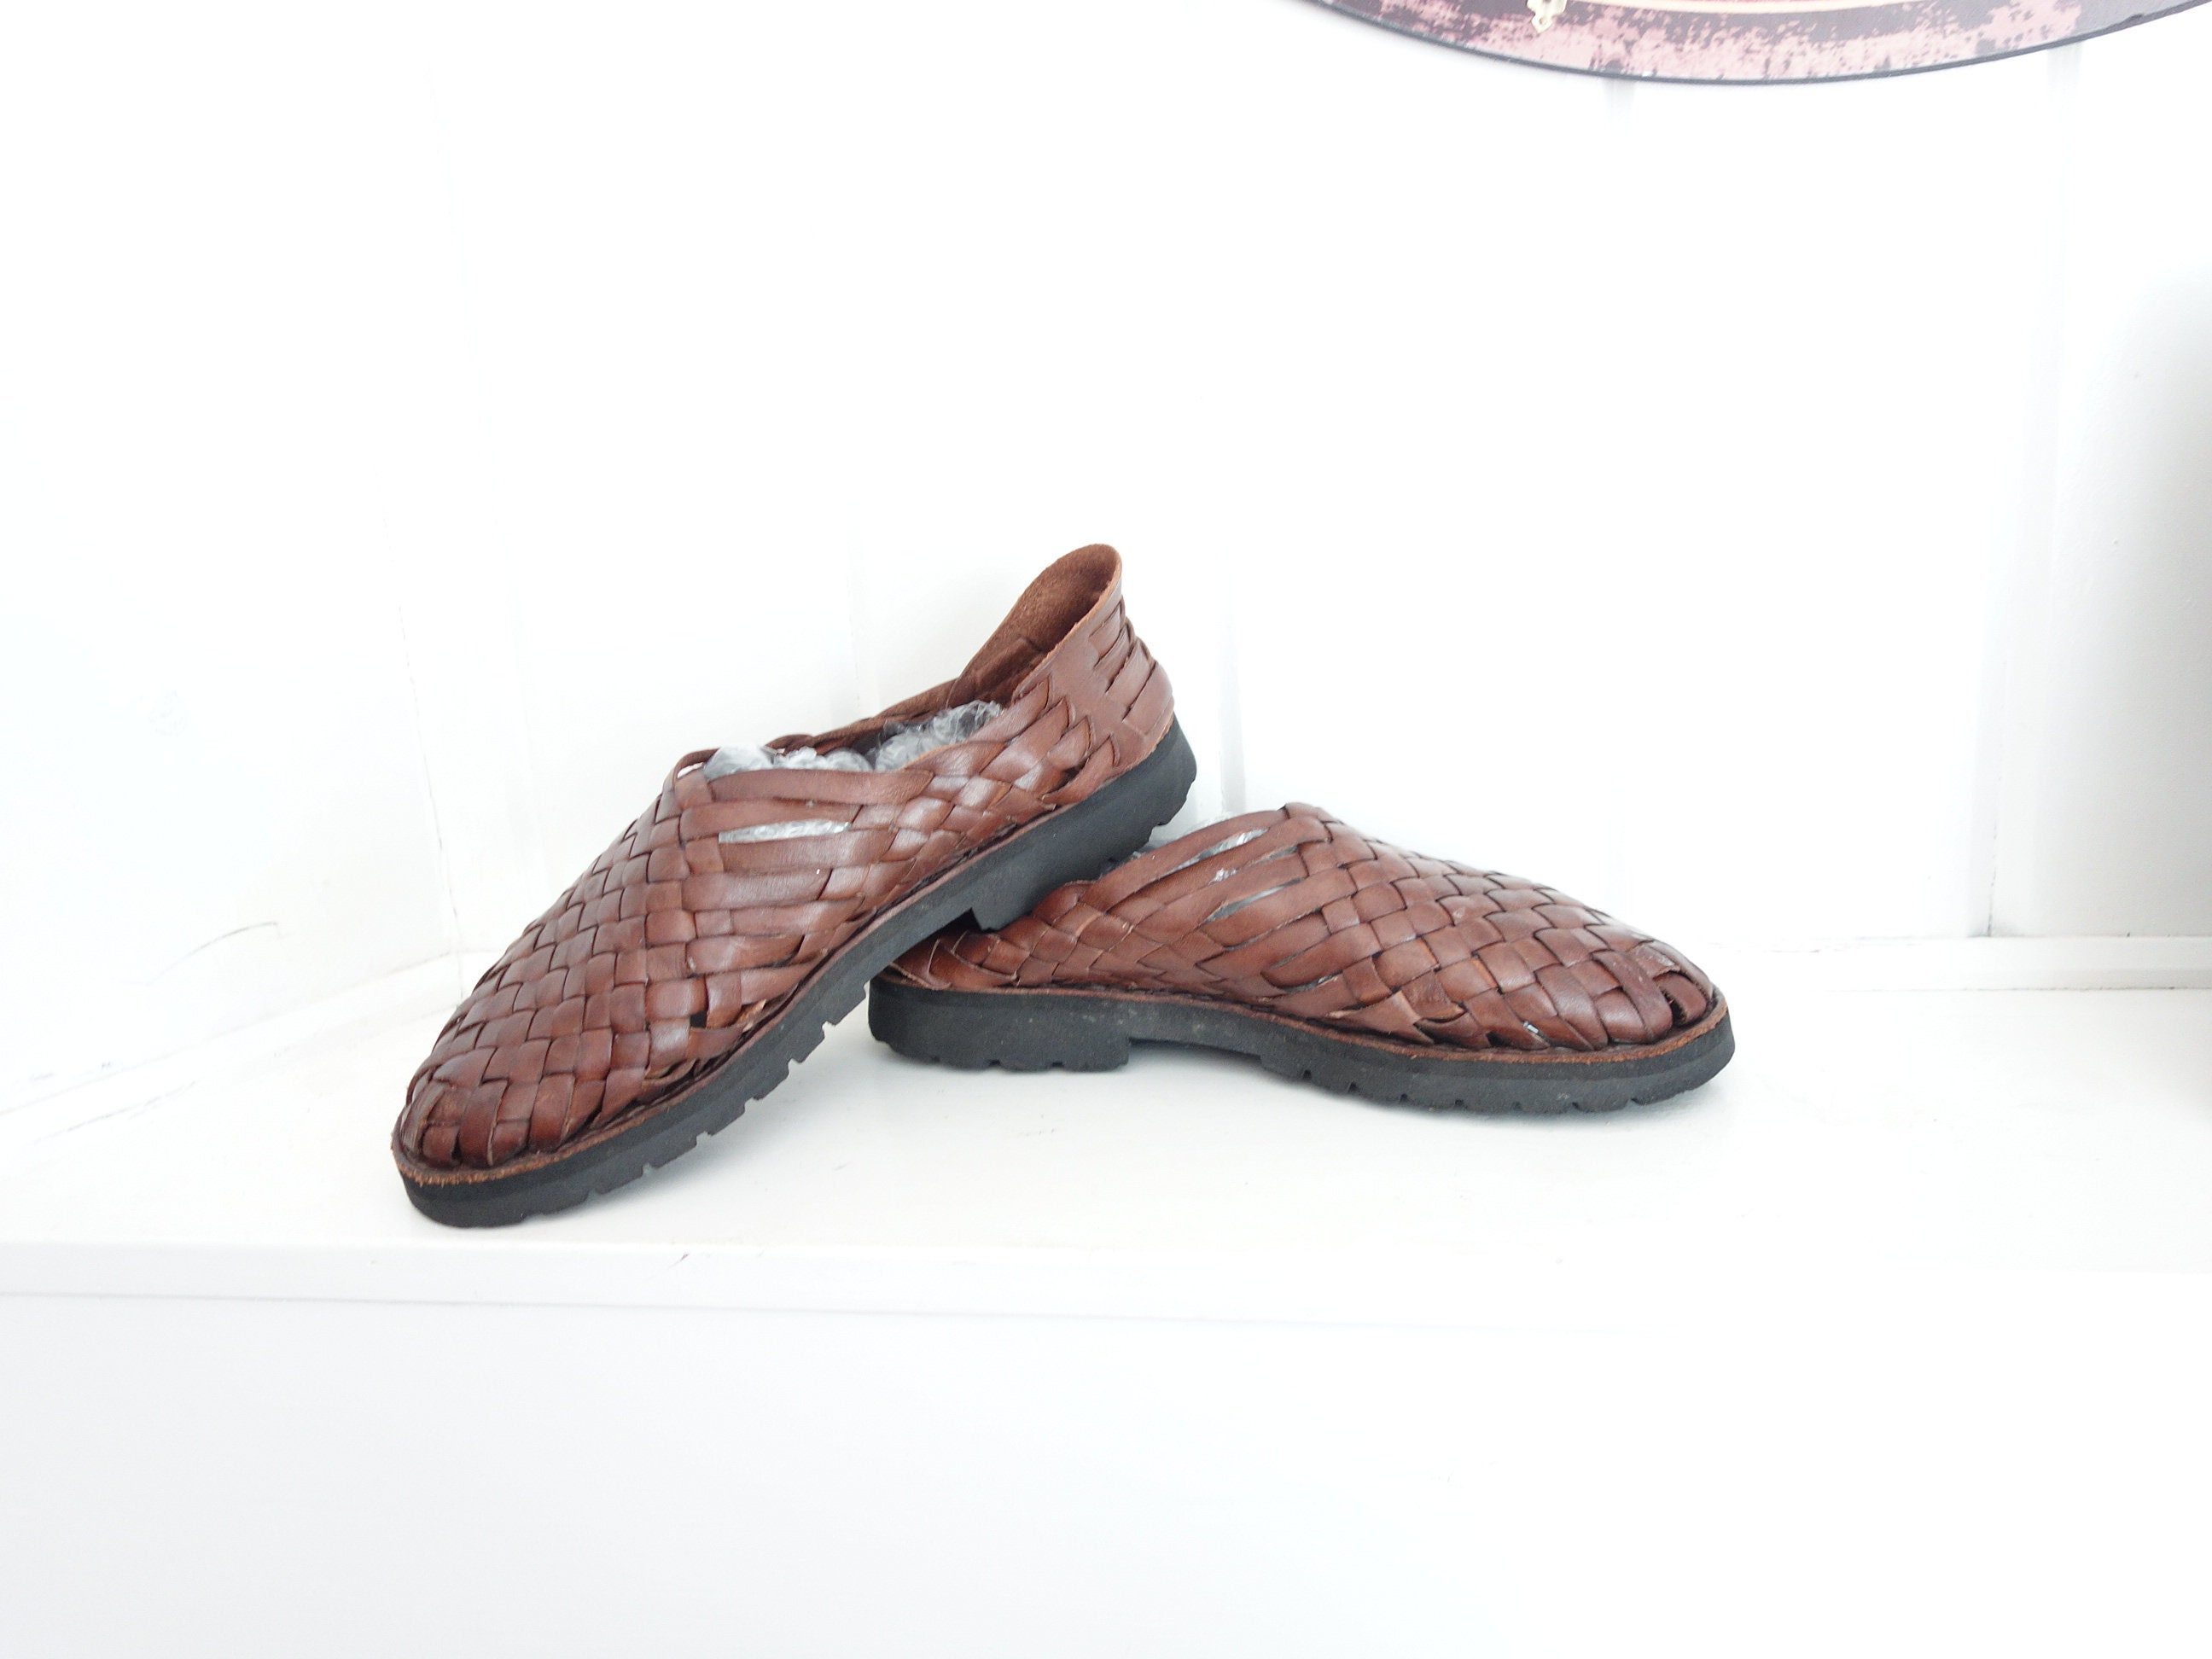 bb44c5753bff Vintage Authentic Mexican Dark Brown Woven Huarache Sandals